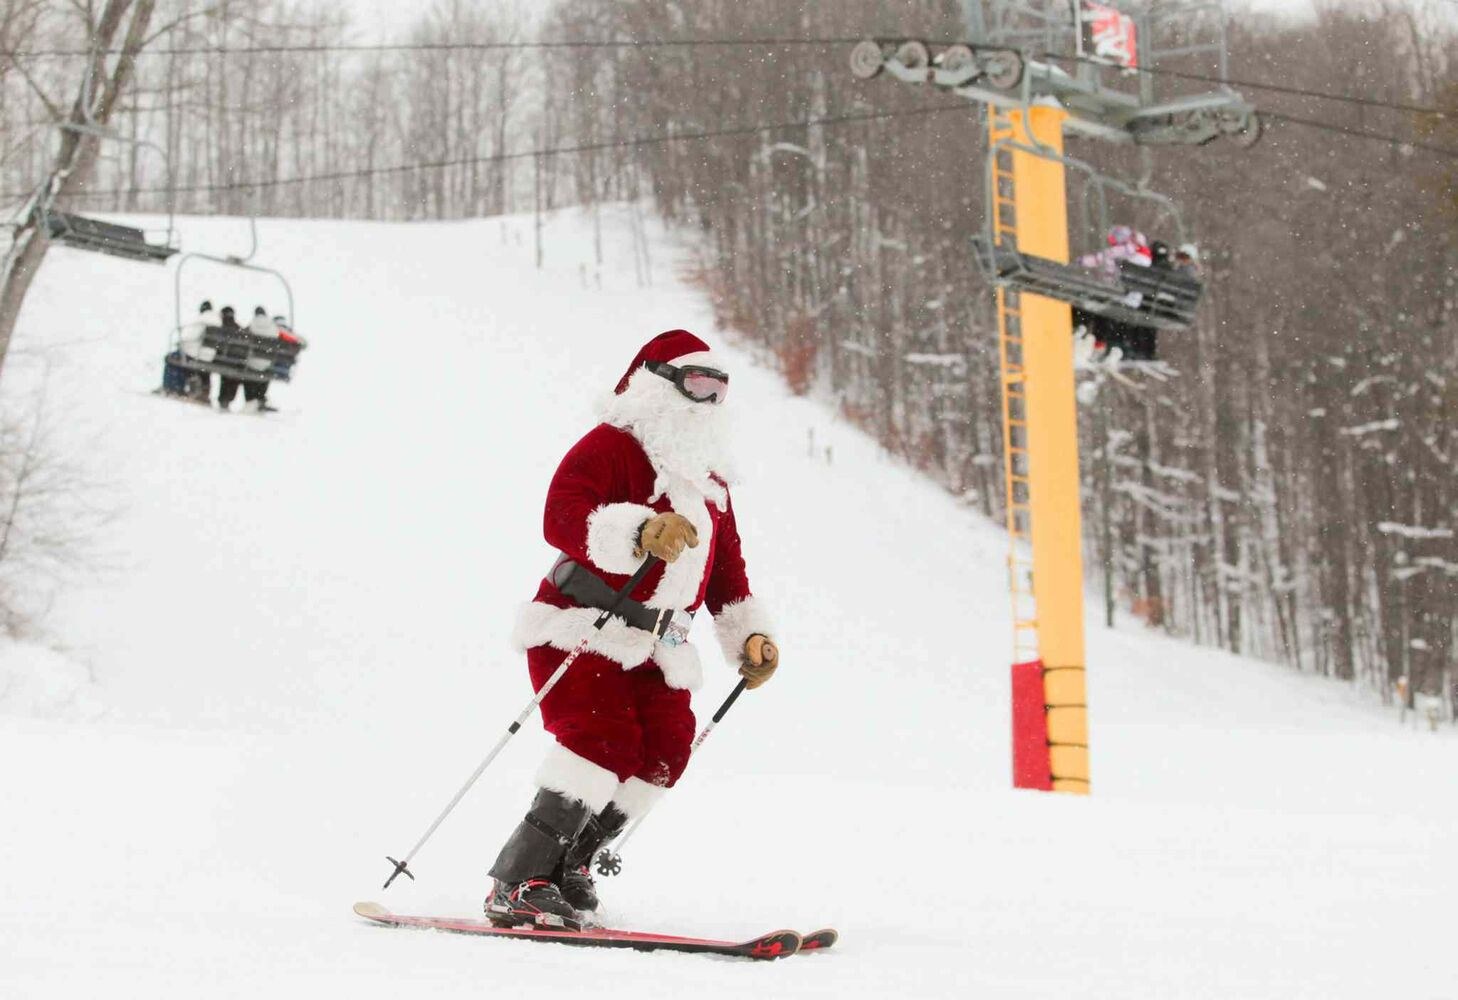 Santa hits the slopes Wednesday during the Ski Free with Santa event on Schuss Mountain at Shanty Creek Resorts in Bellaire, Mich.  (CP)